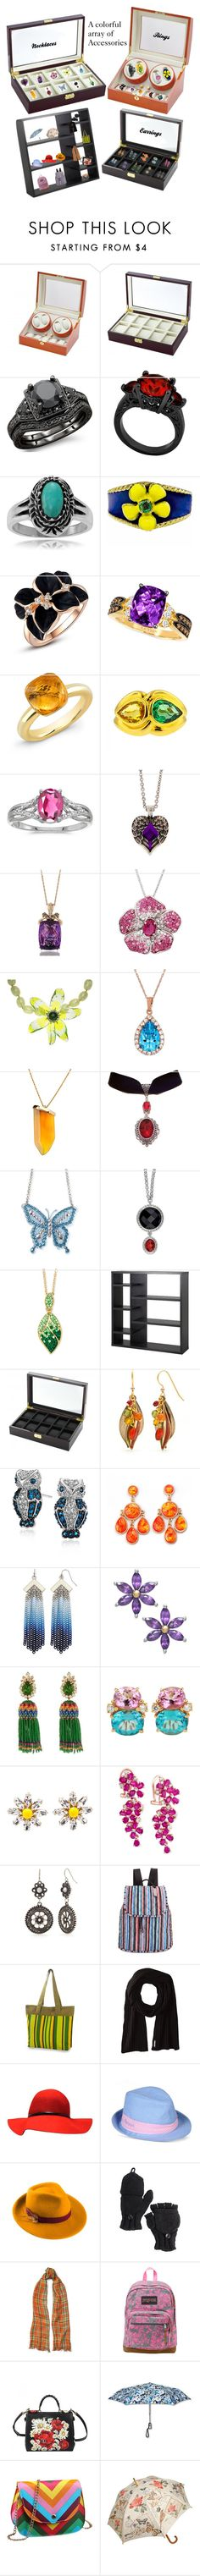 """""""A is for Accessories"""" by pinky-dee ❤ liked on Polyvore featuring Allurez, Journee Collection, LE VIAN, BillyTheTree, claire's, LeVian, Amanda Rose Collection, Chanel, Kenneth Jay Lane and Tarina Tarantino"""